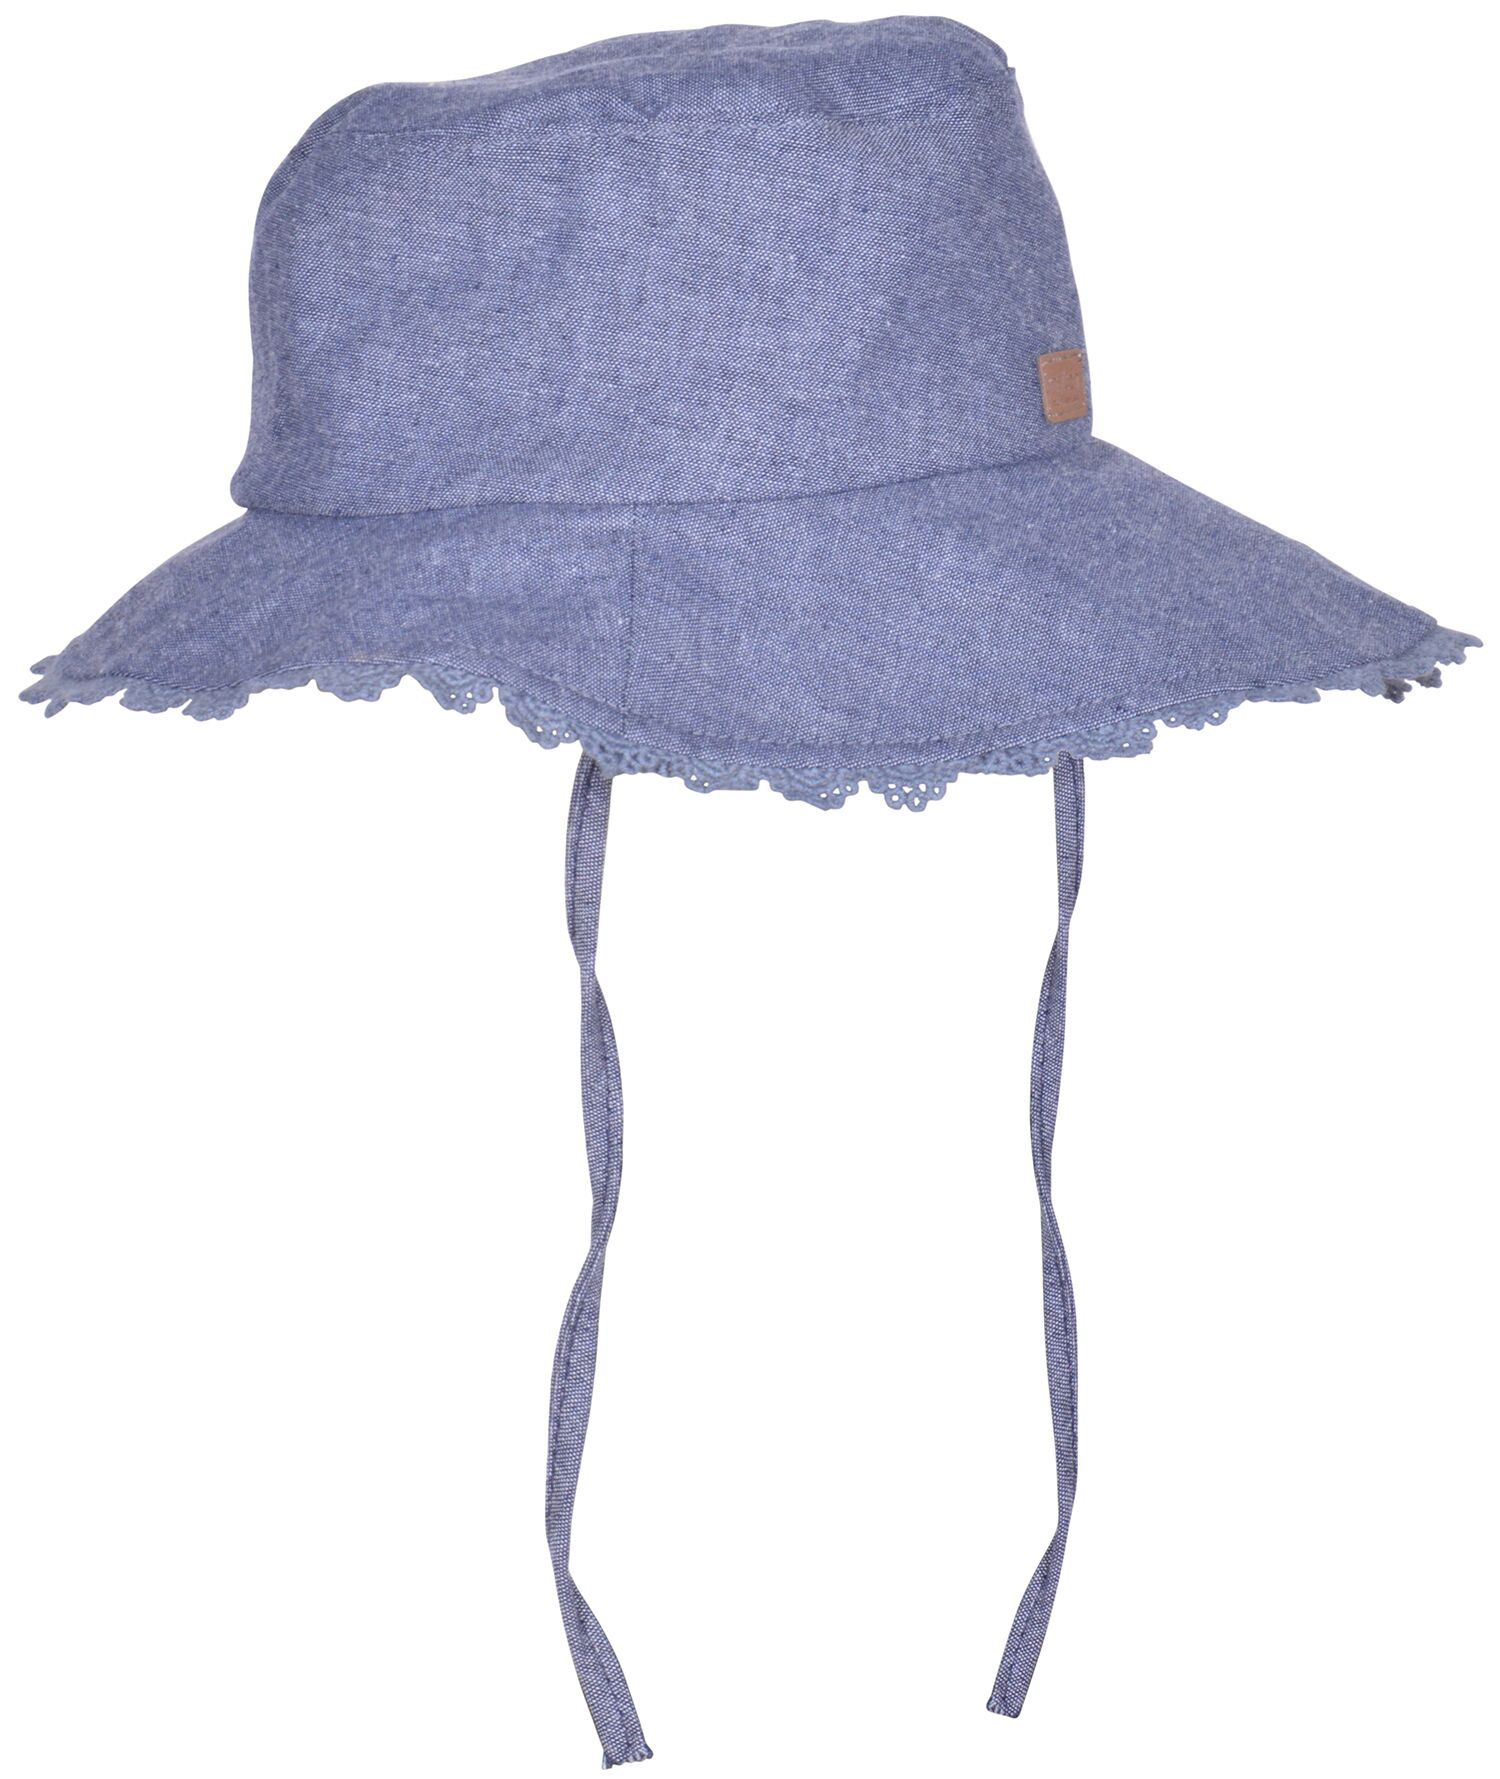 ?Melton - Bucket Hat with Lace